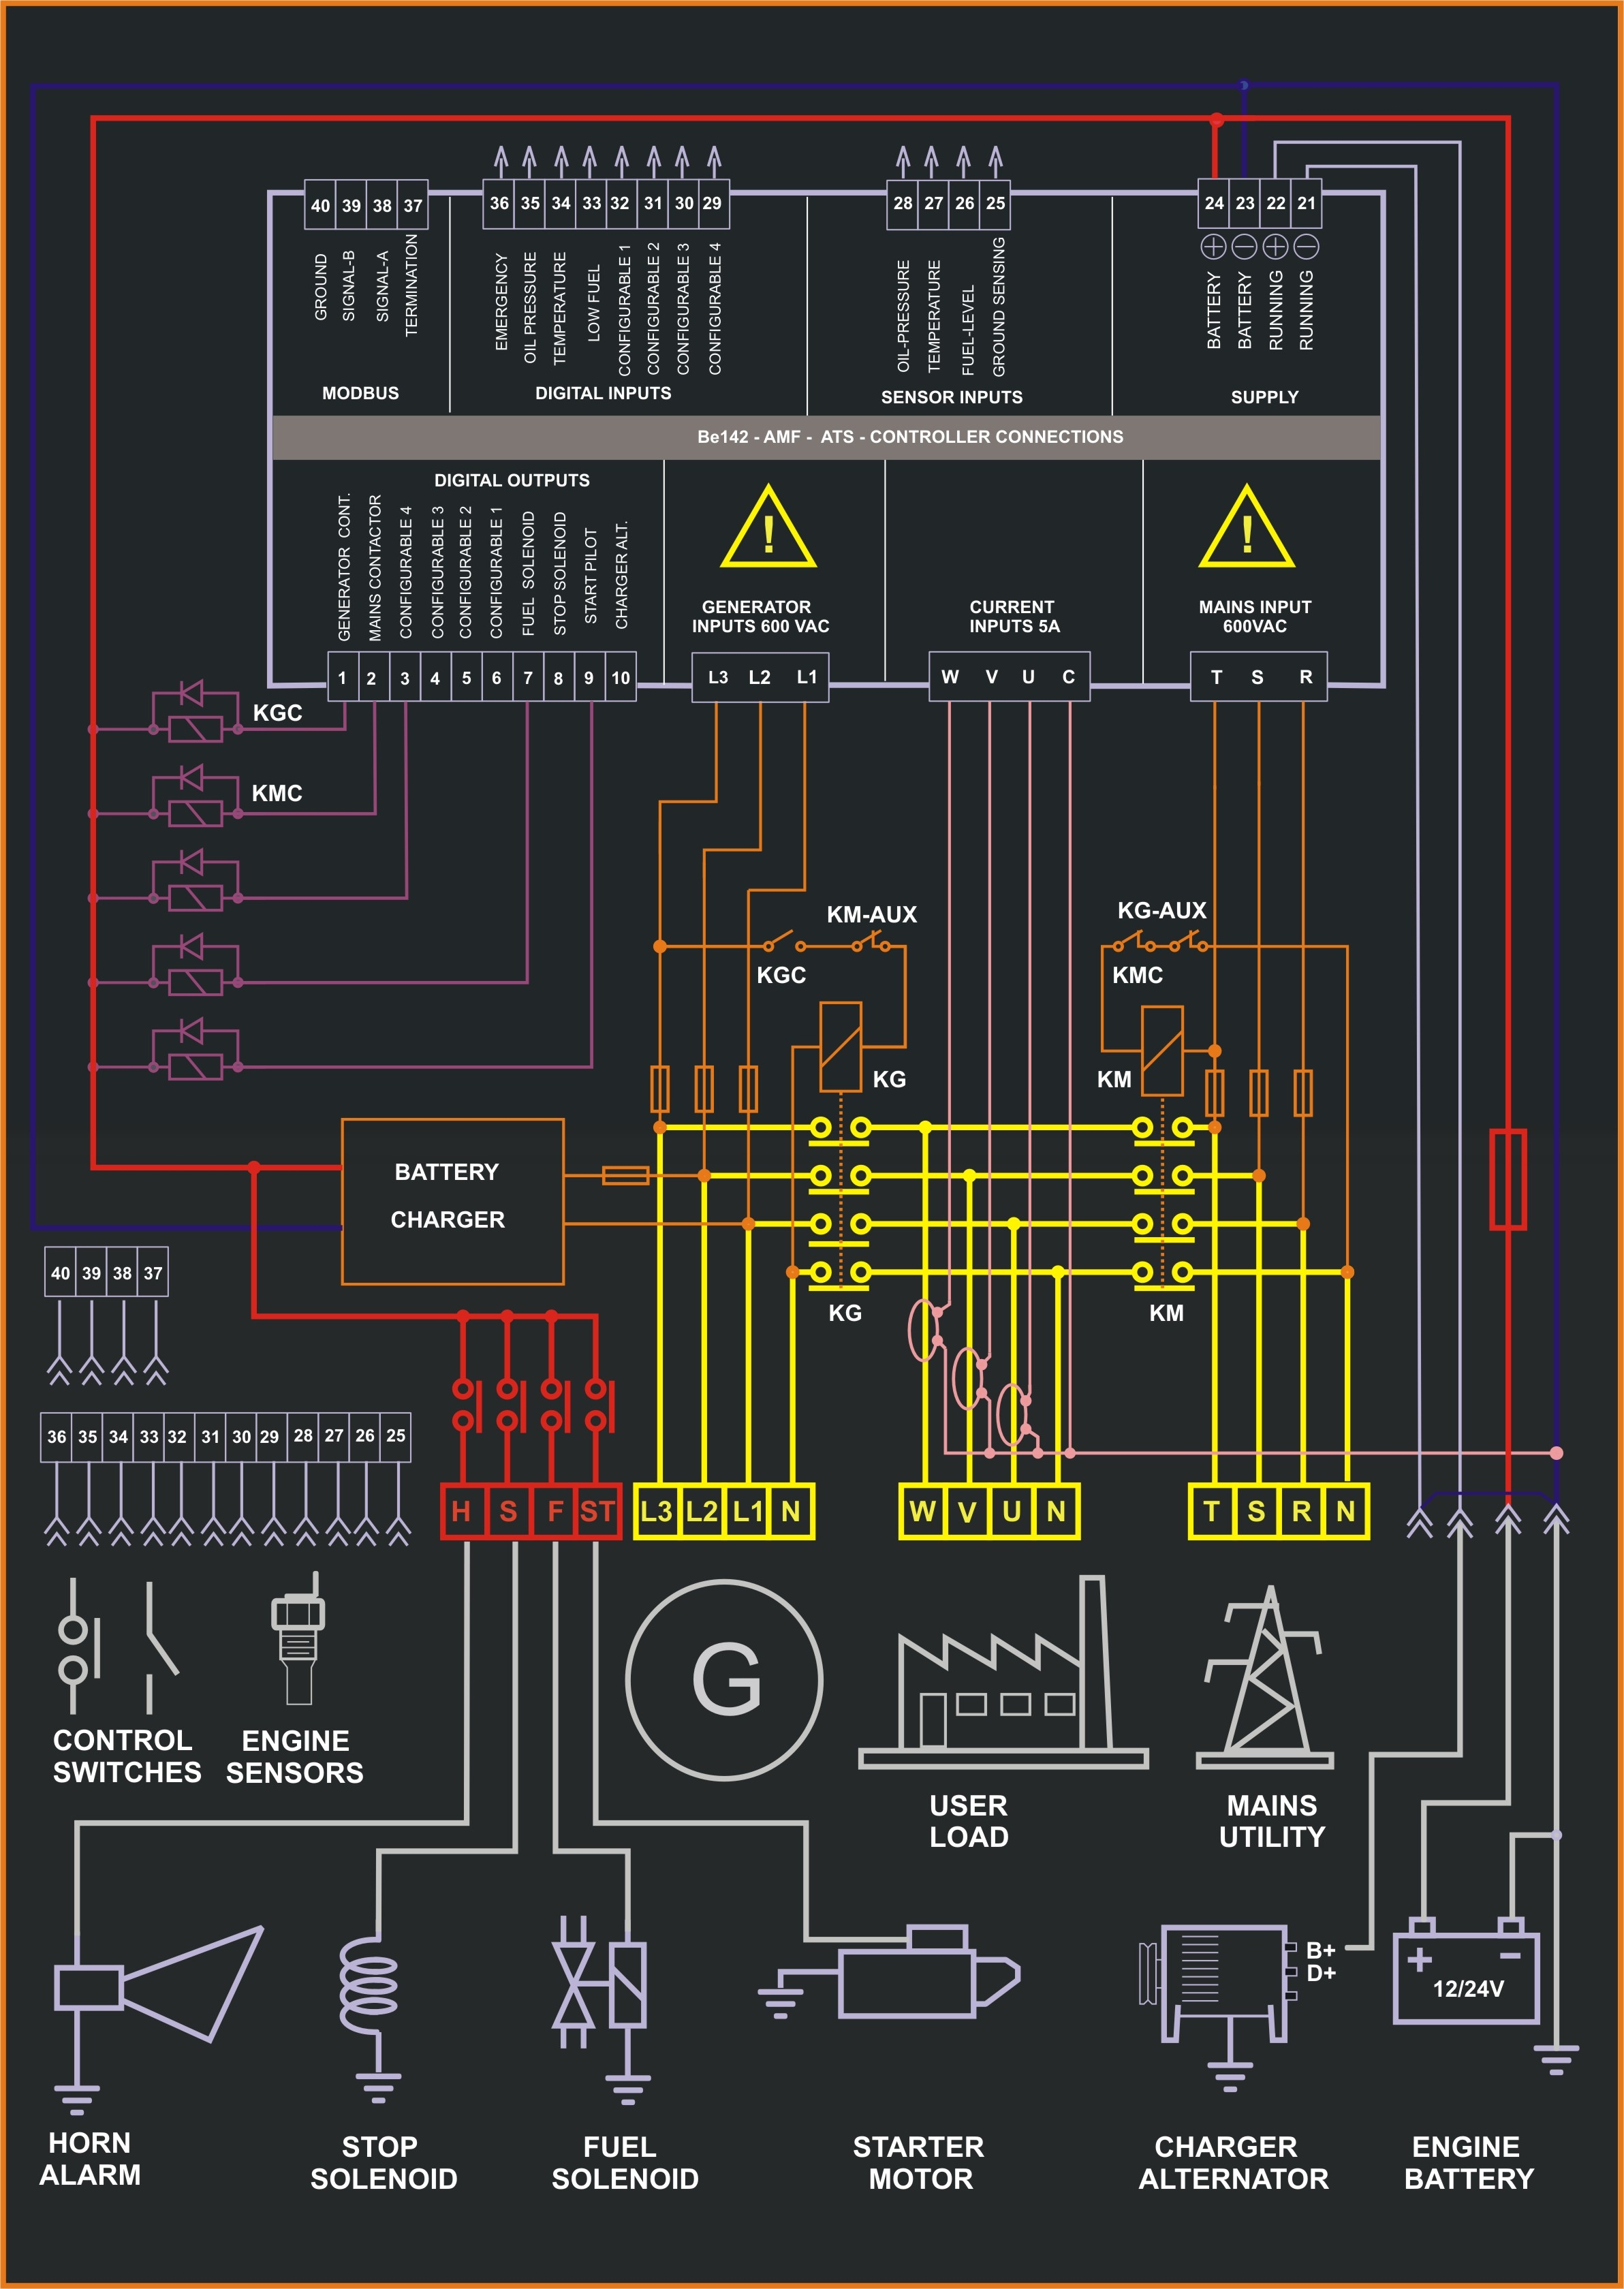 Control panel circuit diagram pdf ats control panel wiring diagram mk ats panel \u2022 wiring diagrams generator control panel wiring diagram pdf at gsmportal.co